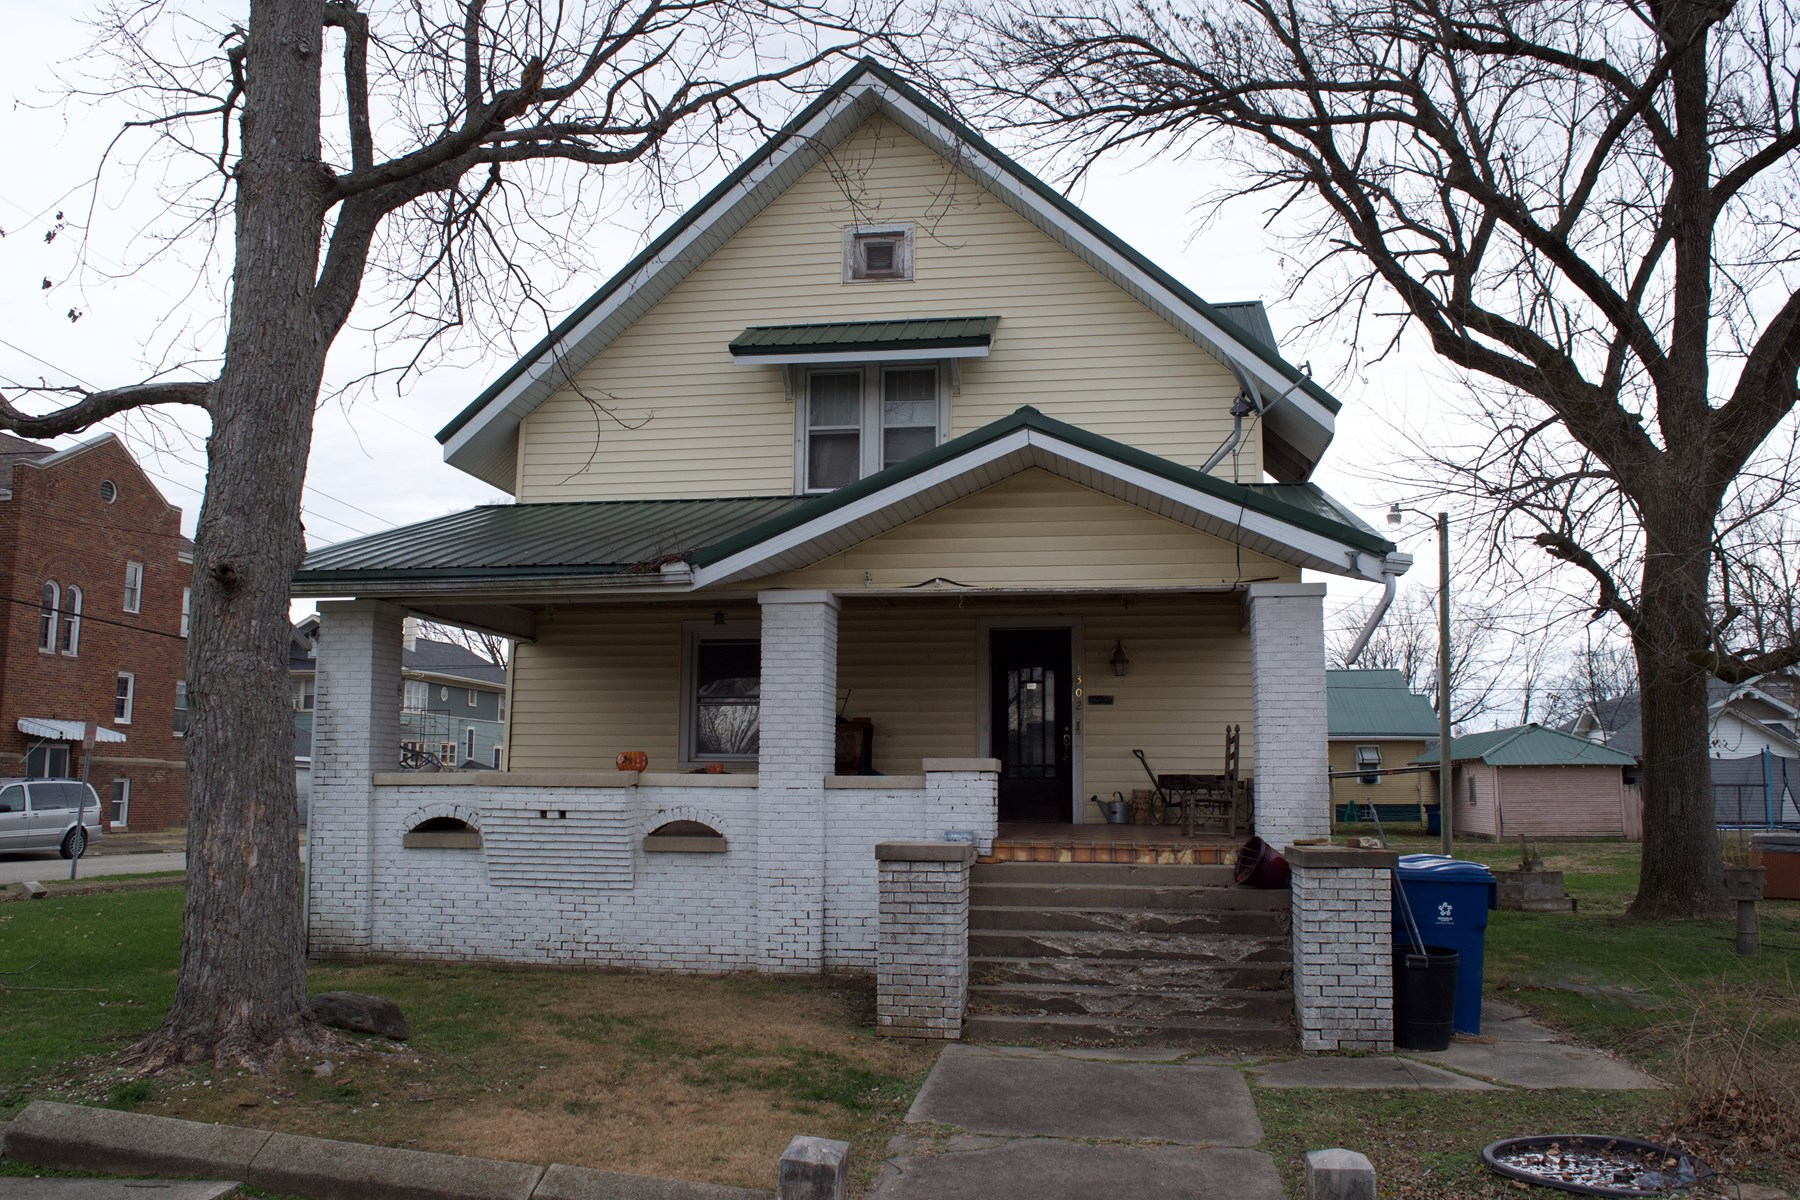 6 Bedroom, 2 Bath Home, Online Auction, Lawrenceville, IL